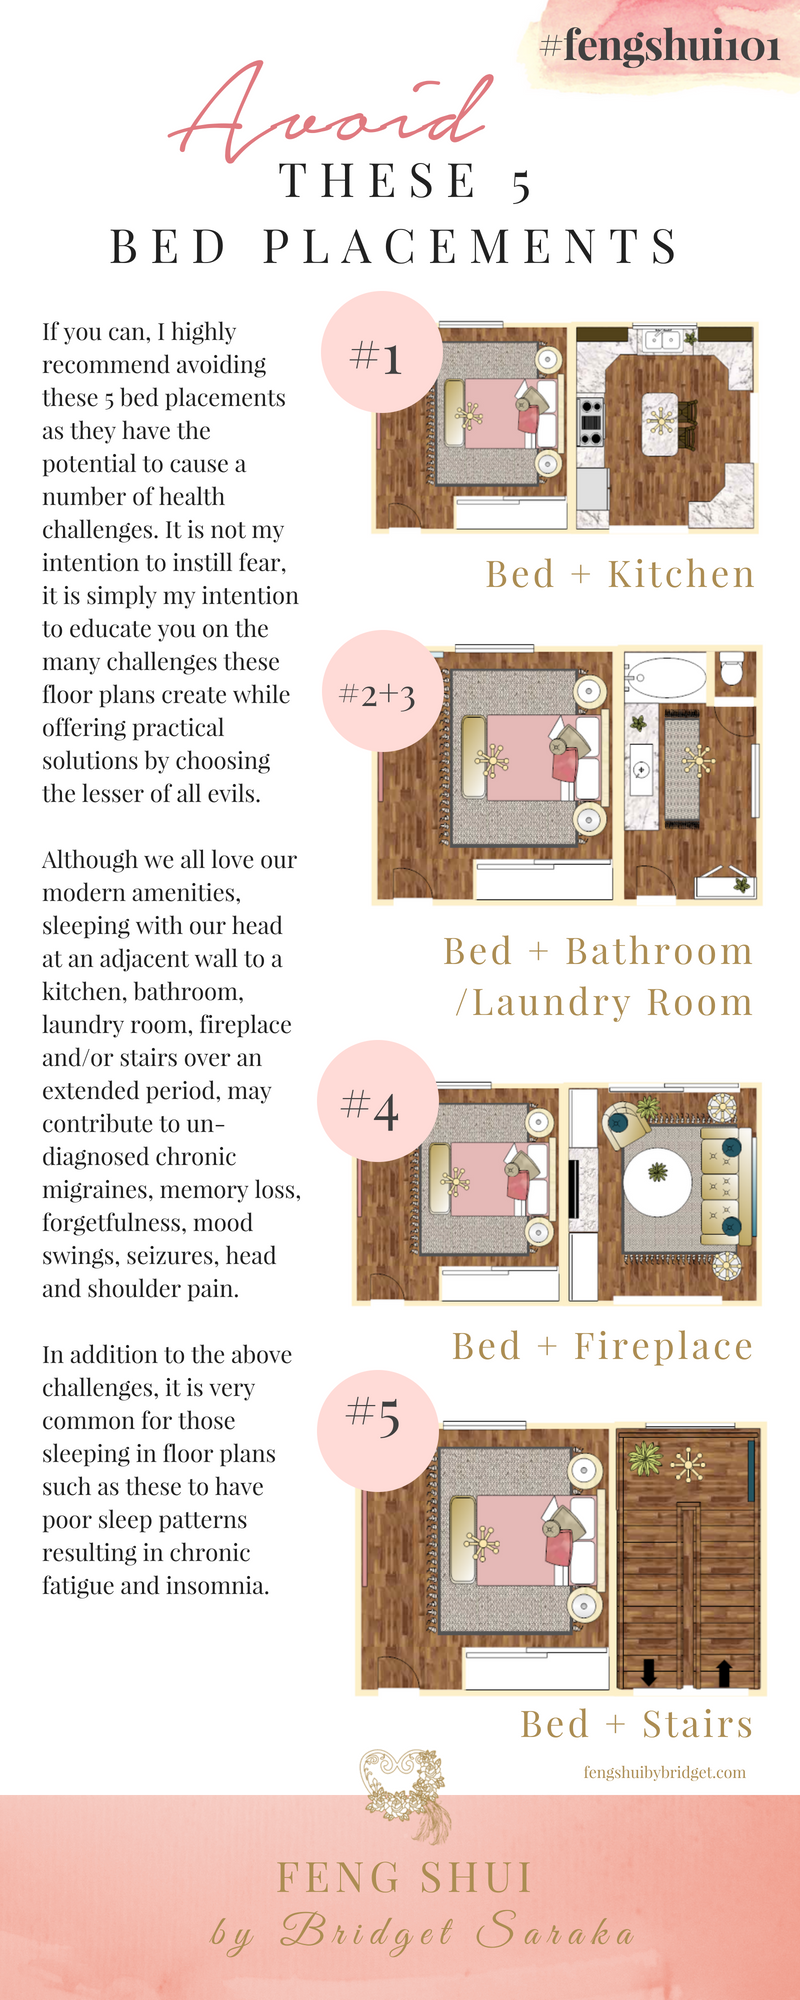 Avoid These 5 Bed Placements fengshui101 Bed placement